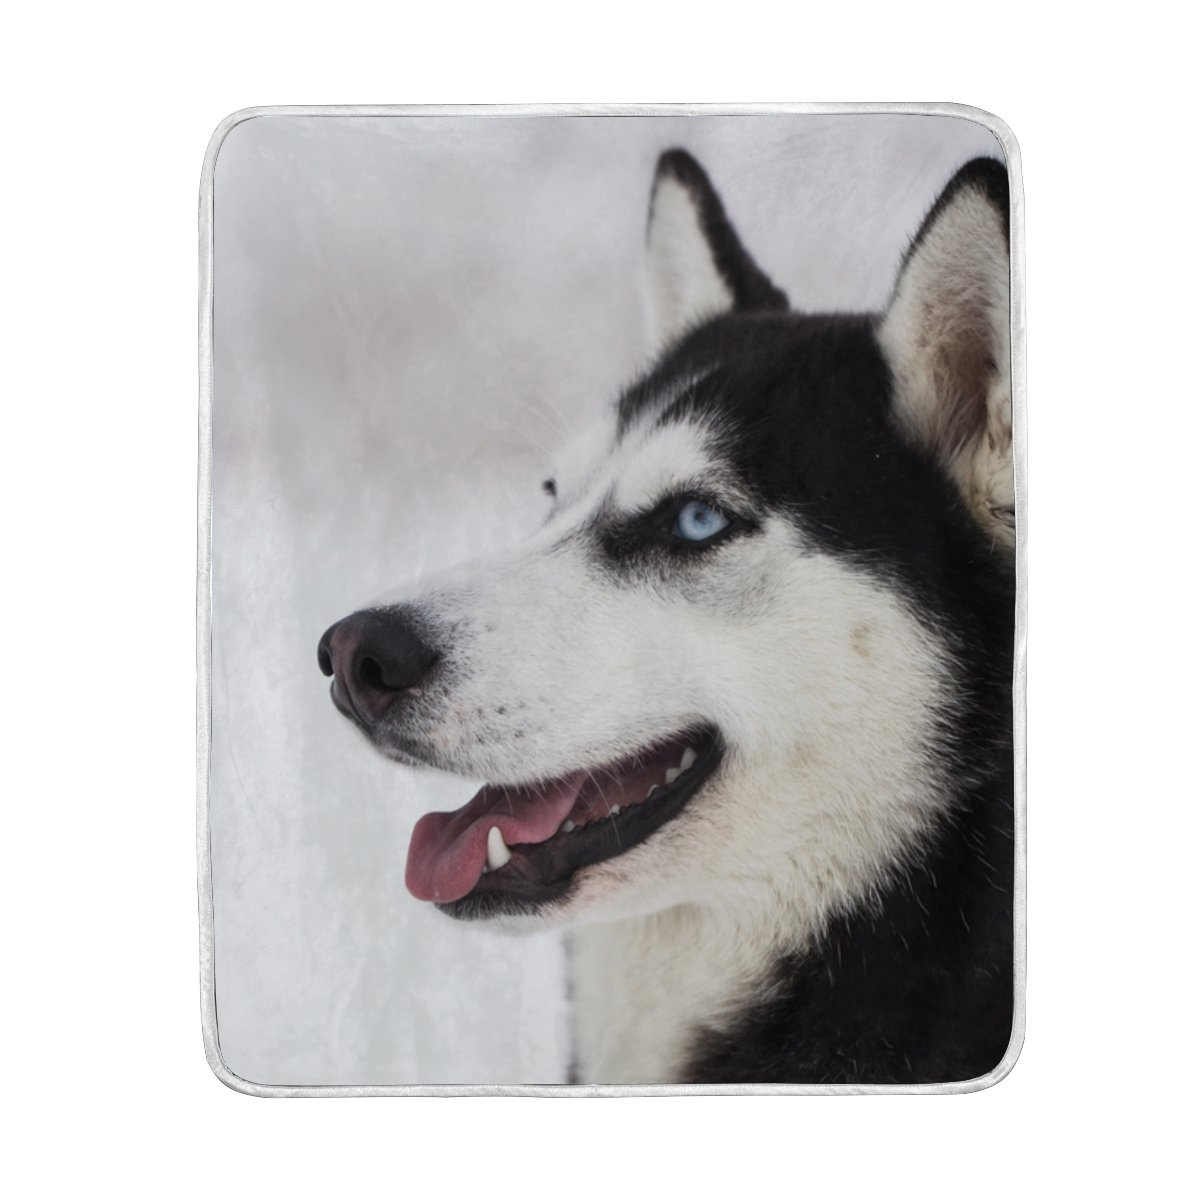 Cooper girl Cute Husky Dog Throw Blanket Soft Warm Bed Couch Blanket Lightweight Polyester Microfiber 50x60 Inch